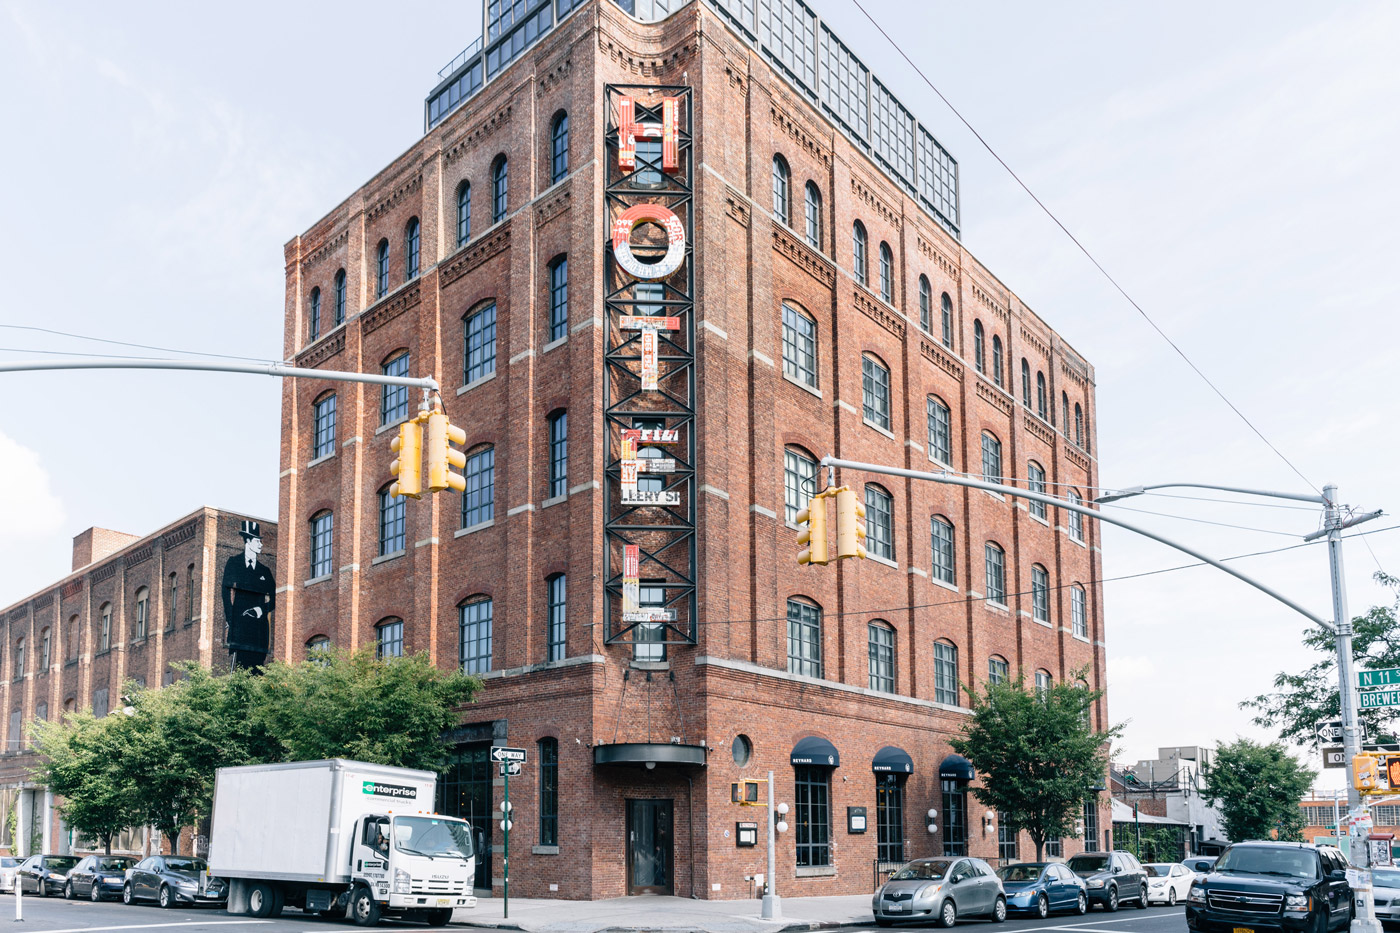 Iconic hotel in Williamsburg Brooklyn